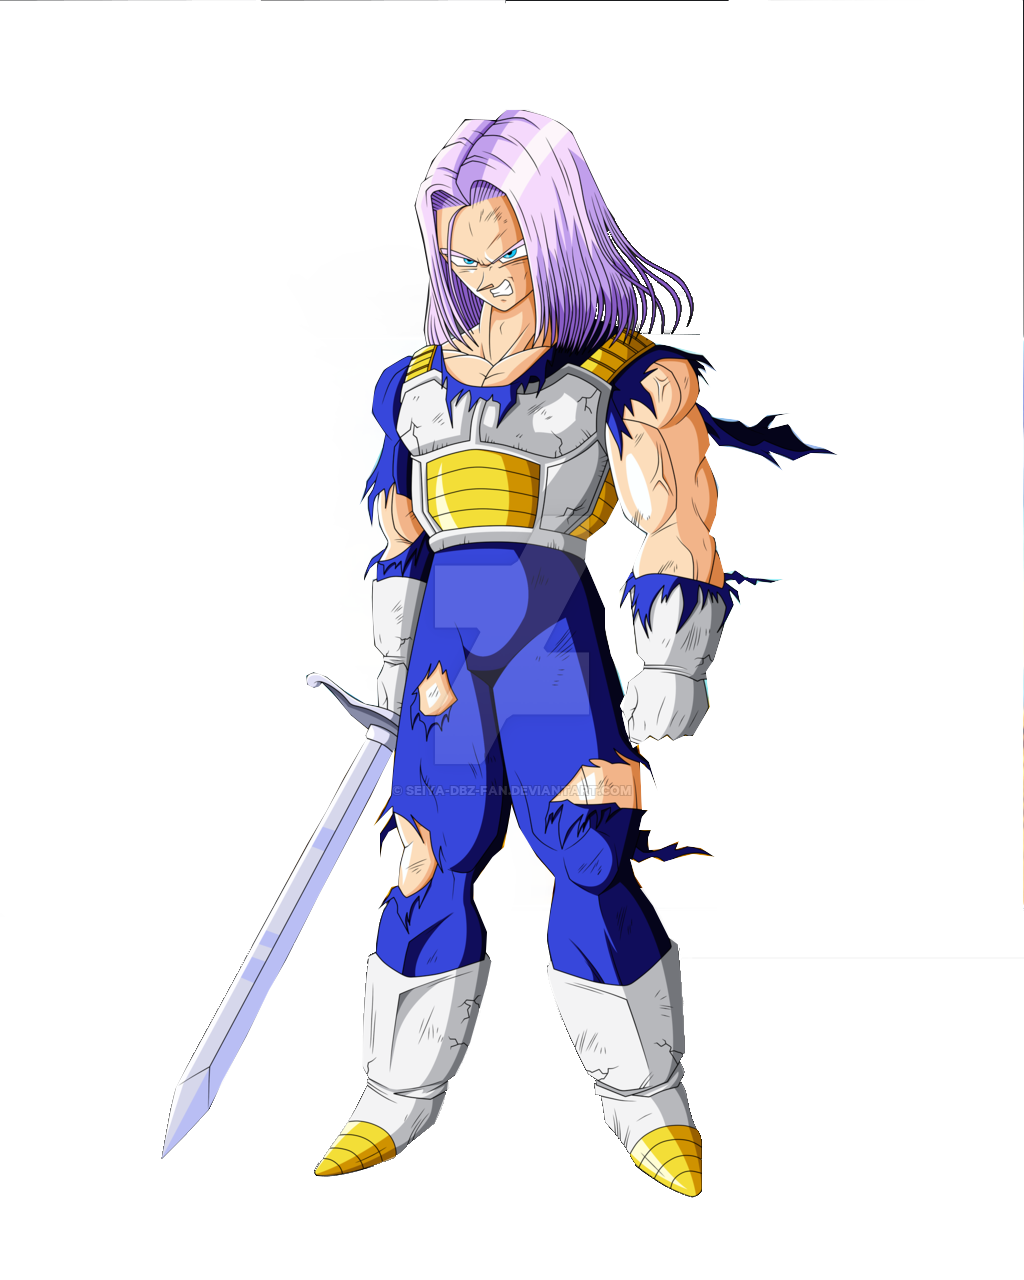 Trunks hair png. Image with his sword